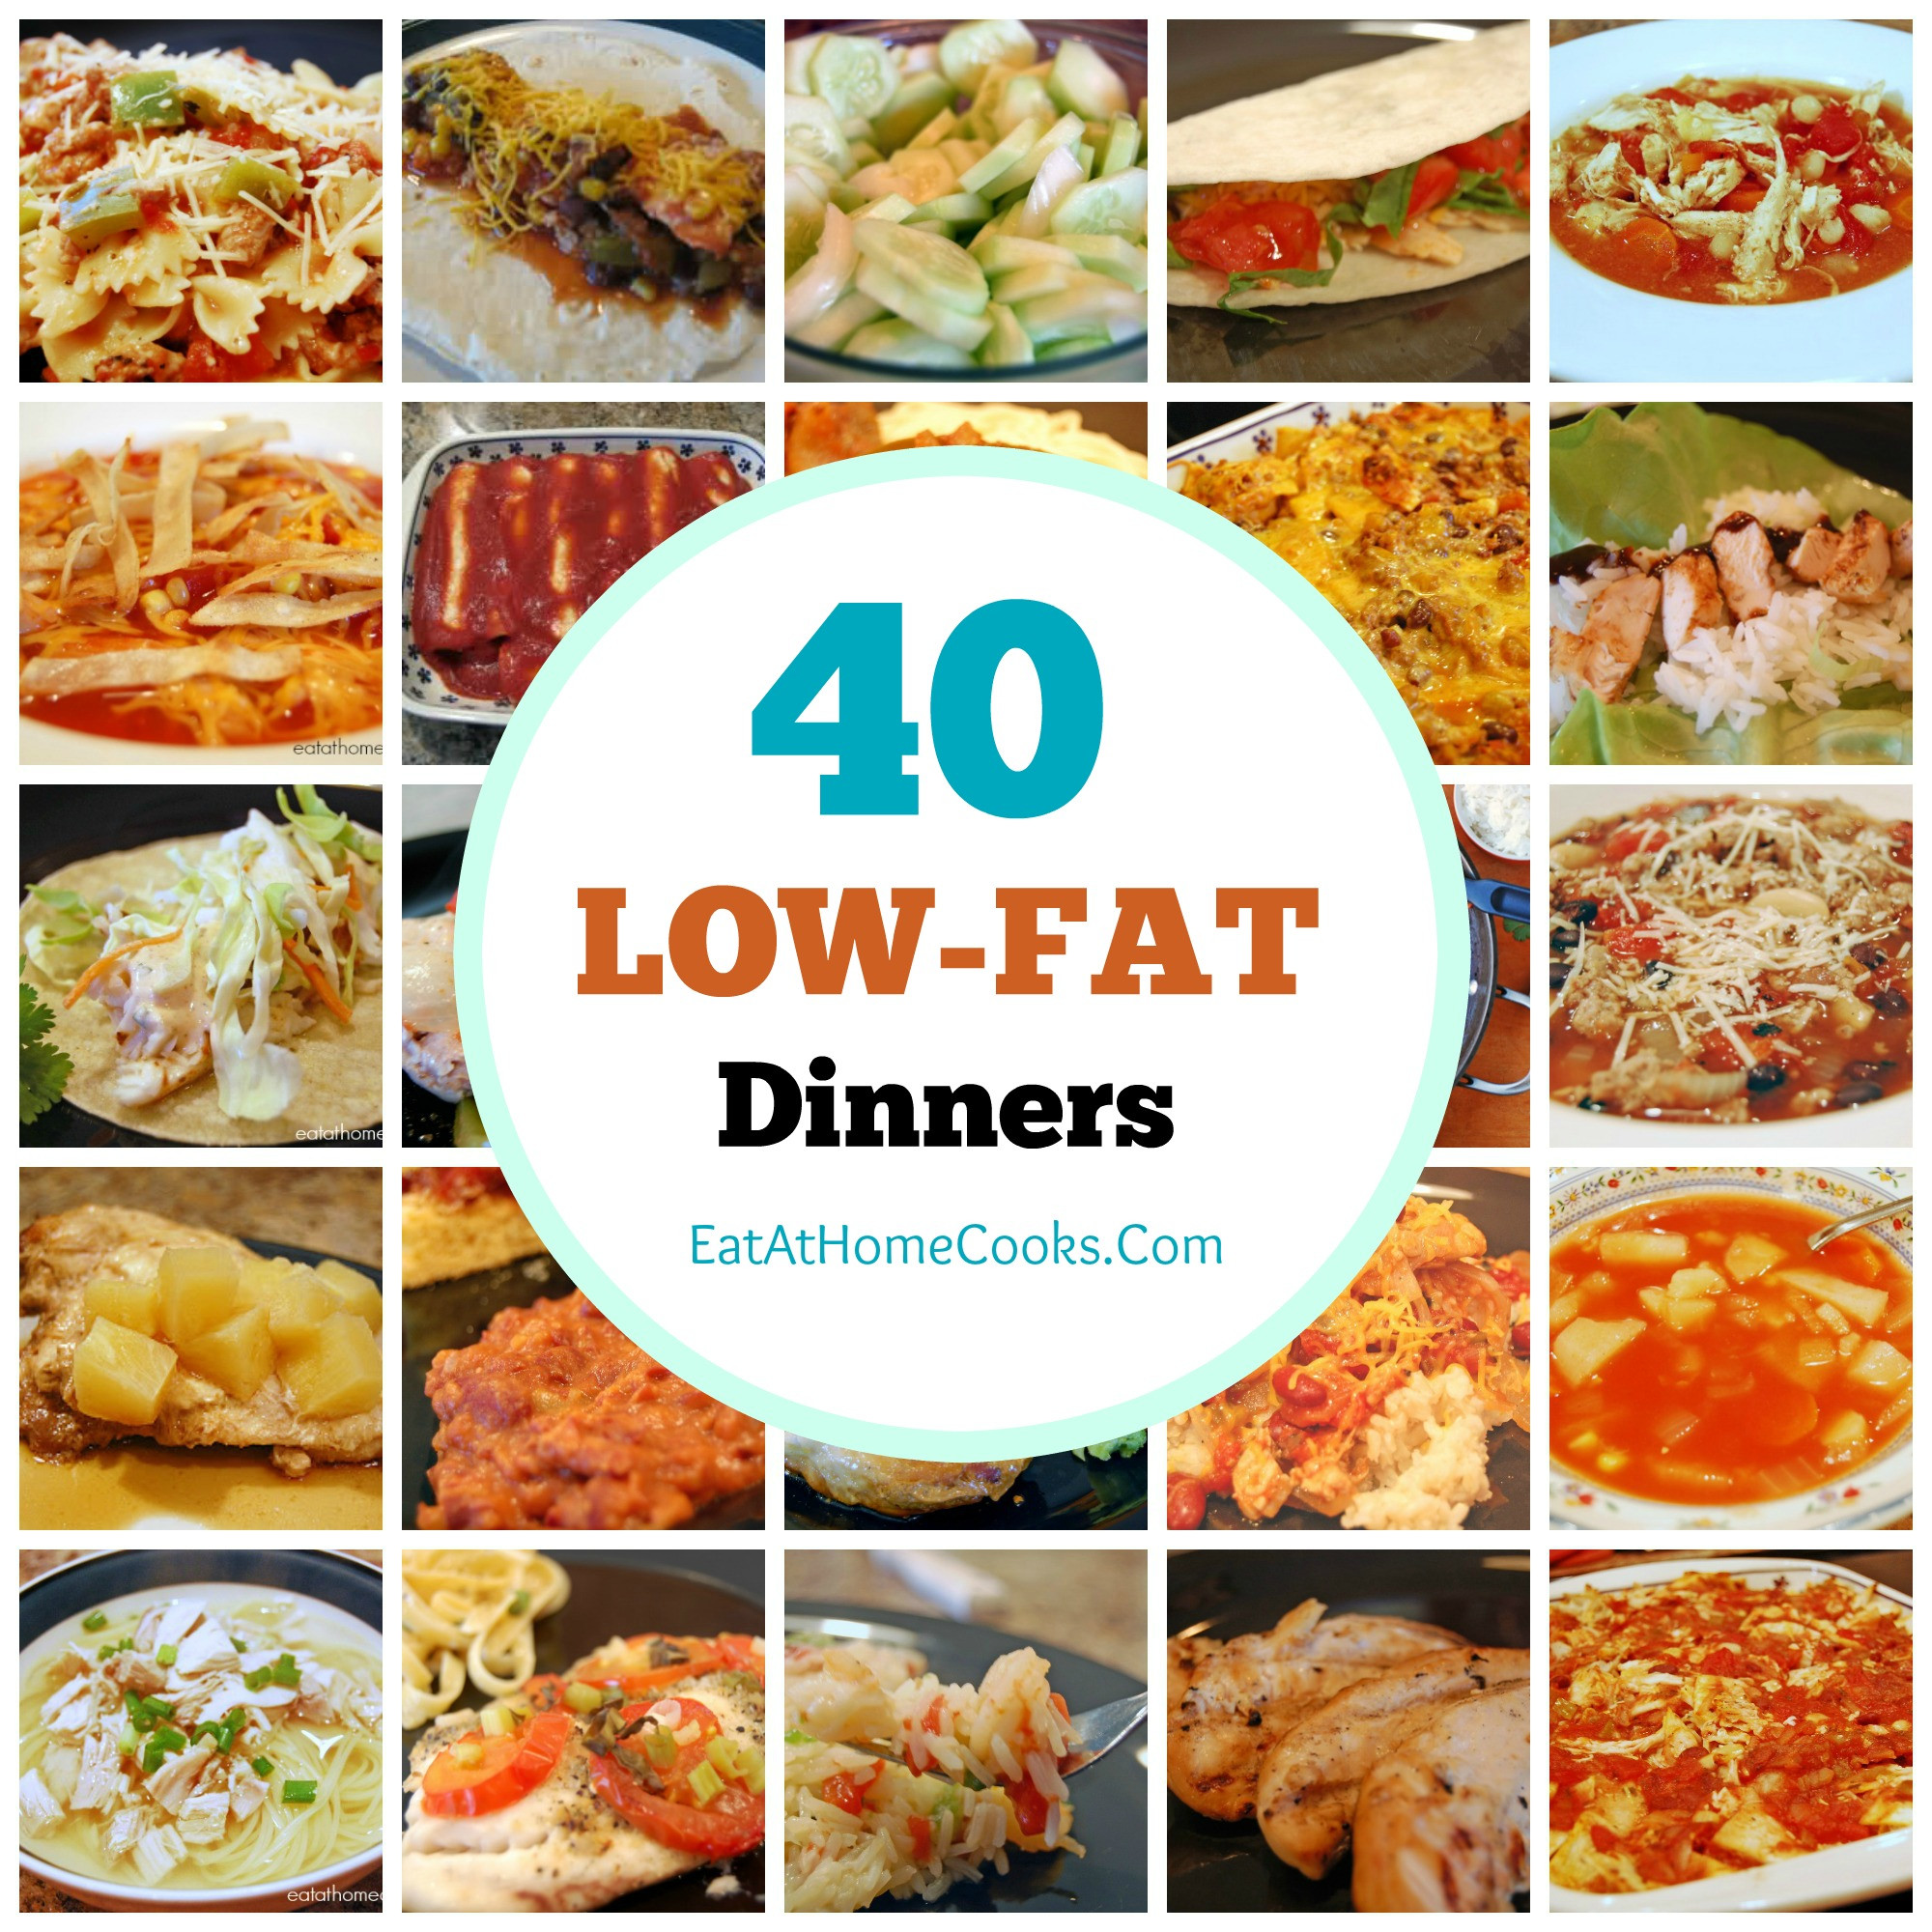 Recipes For Low Cholesterol  My Big Fat List of 40 Low Fat Recipes Eat at Home